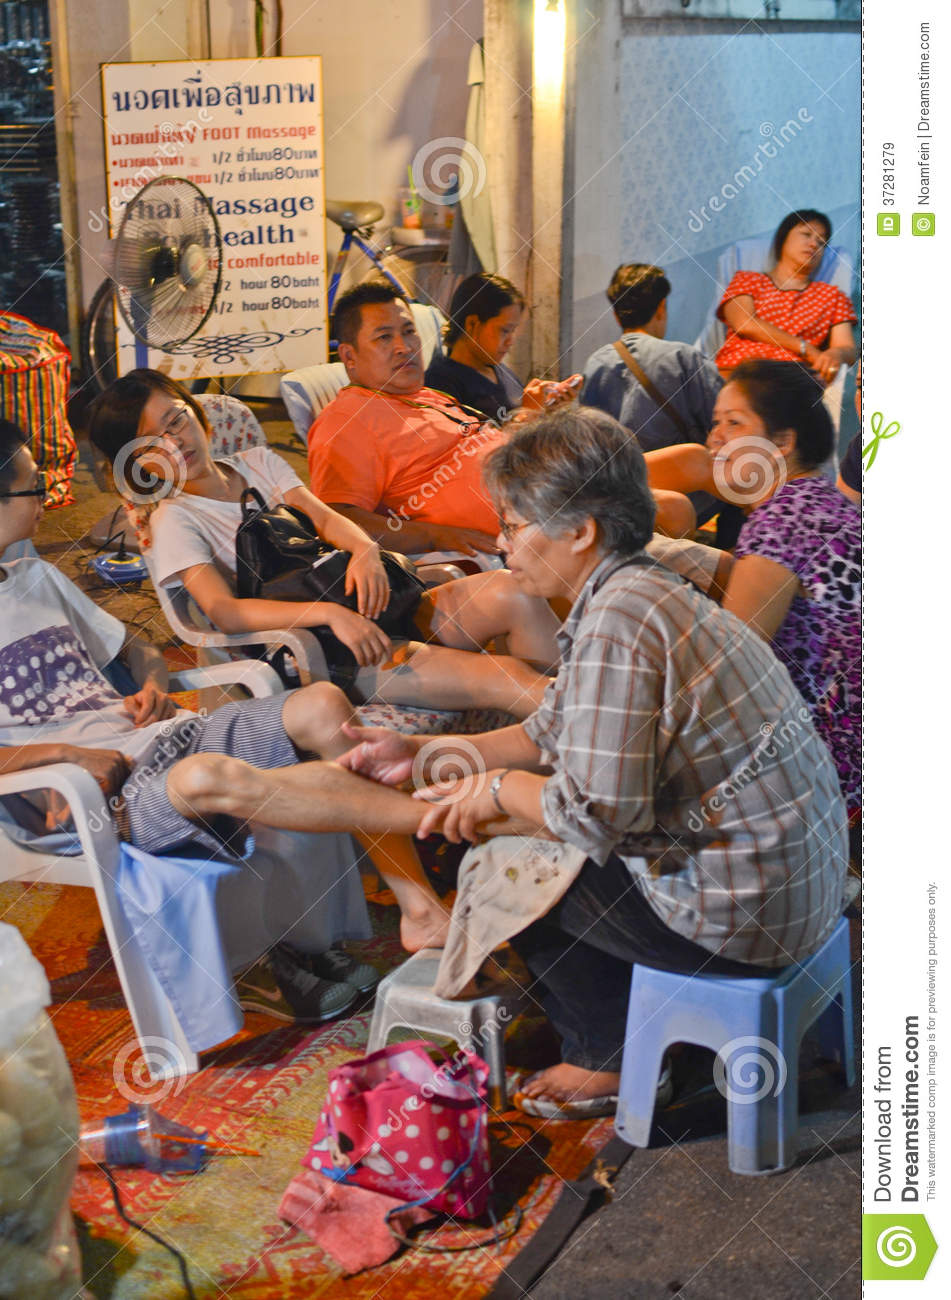 Thai Massage in Thailand editorial stock image Image of